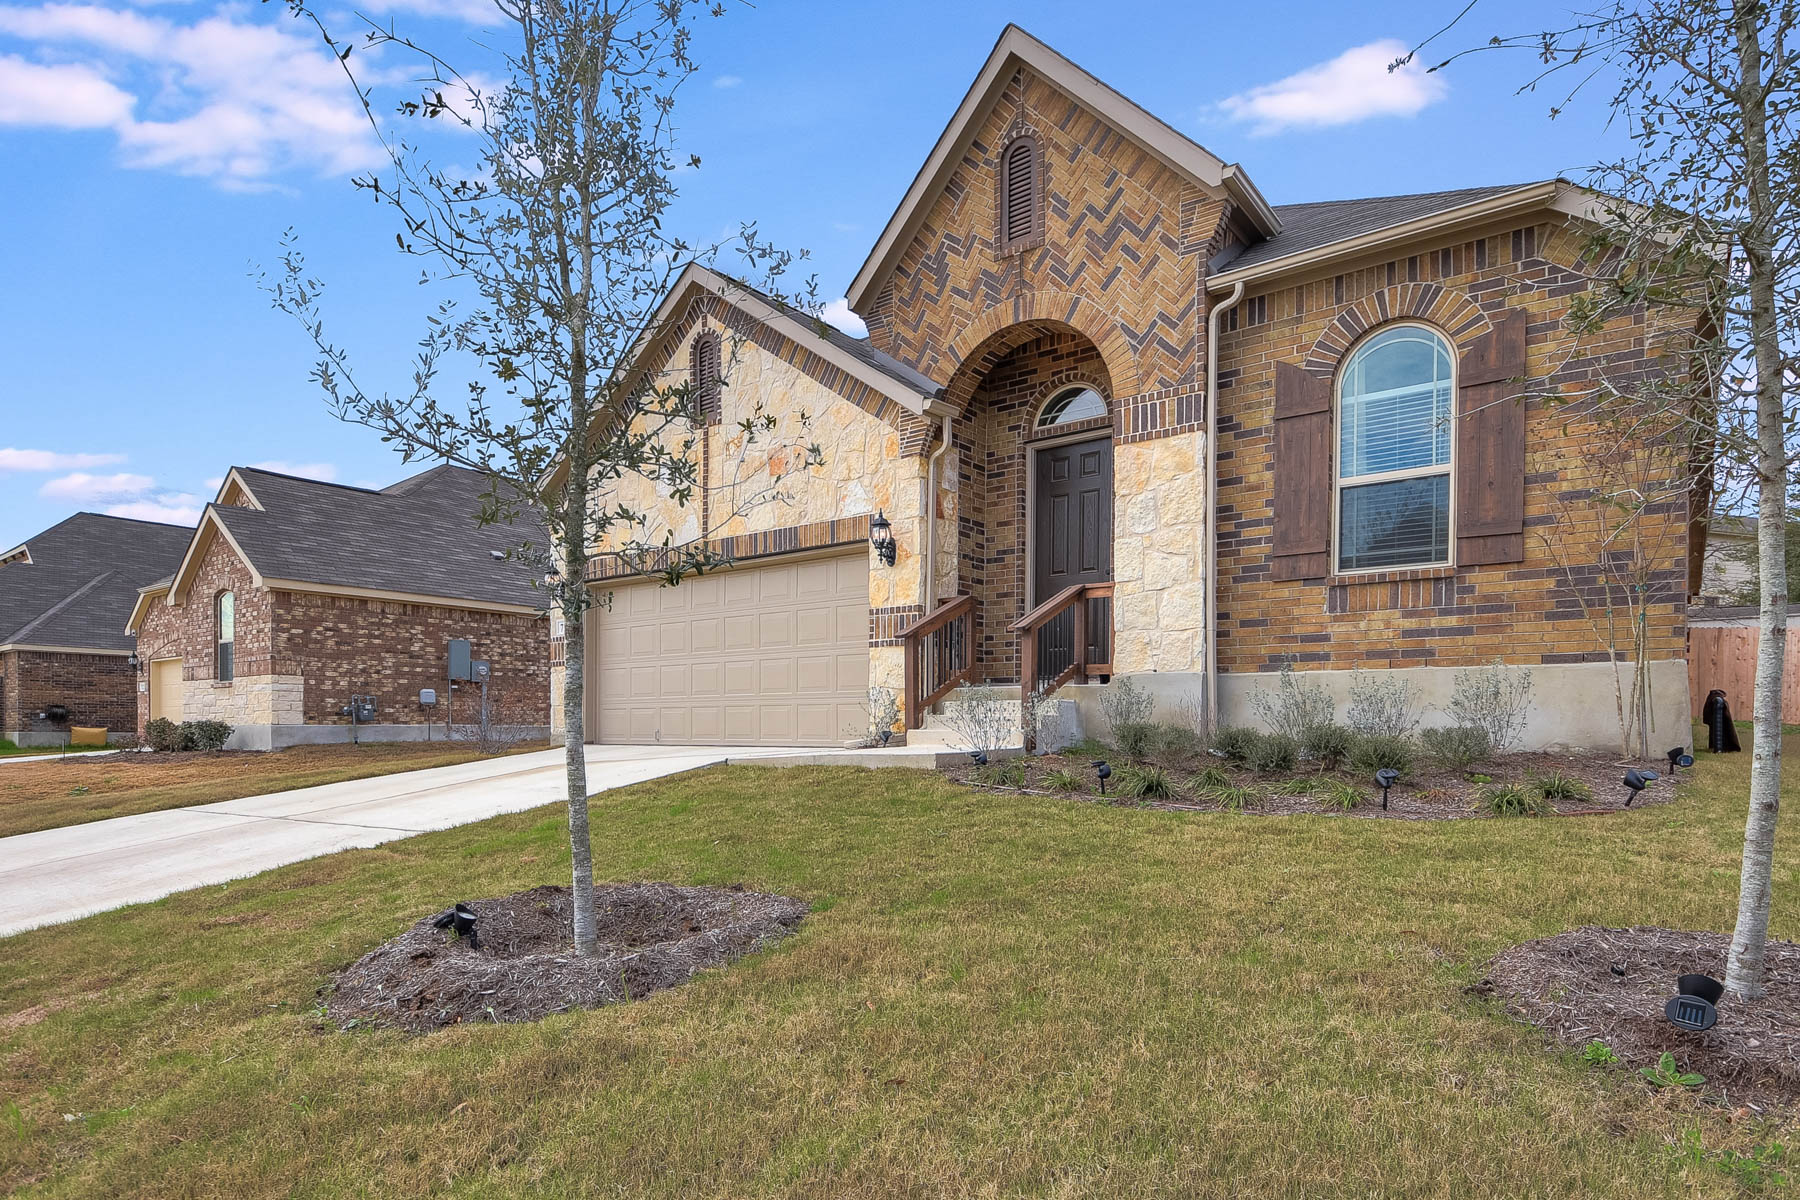 Single Family Home for Sale at Newly Built Gehan Home in Schertz 716 Pulitzer Road Schertz, Texas 78108 United States